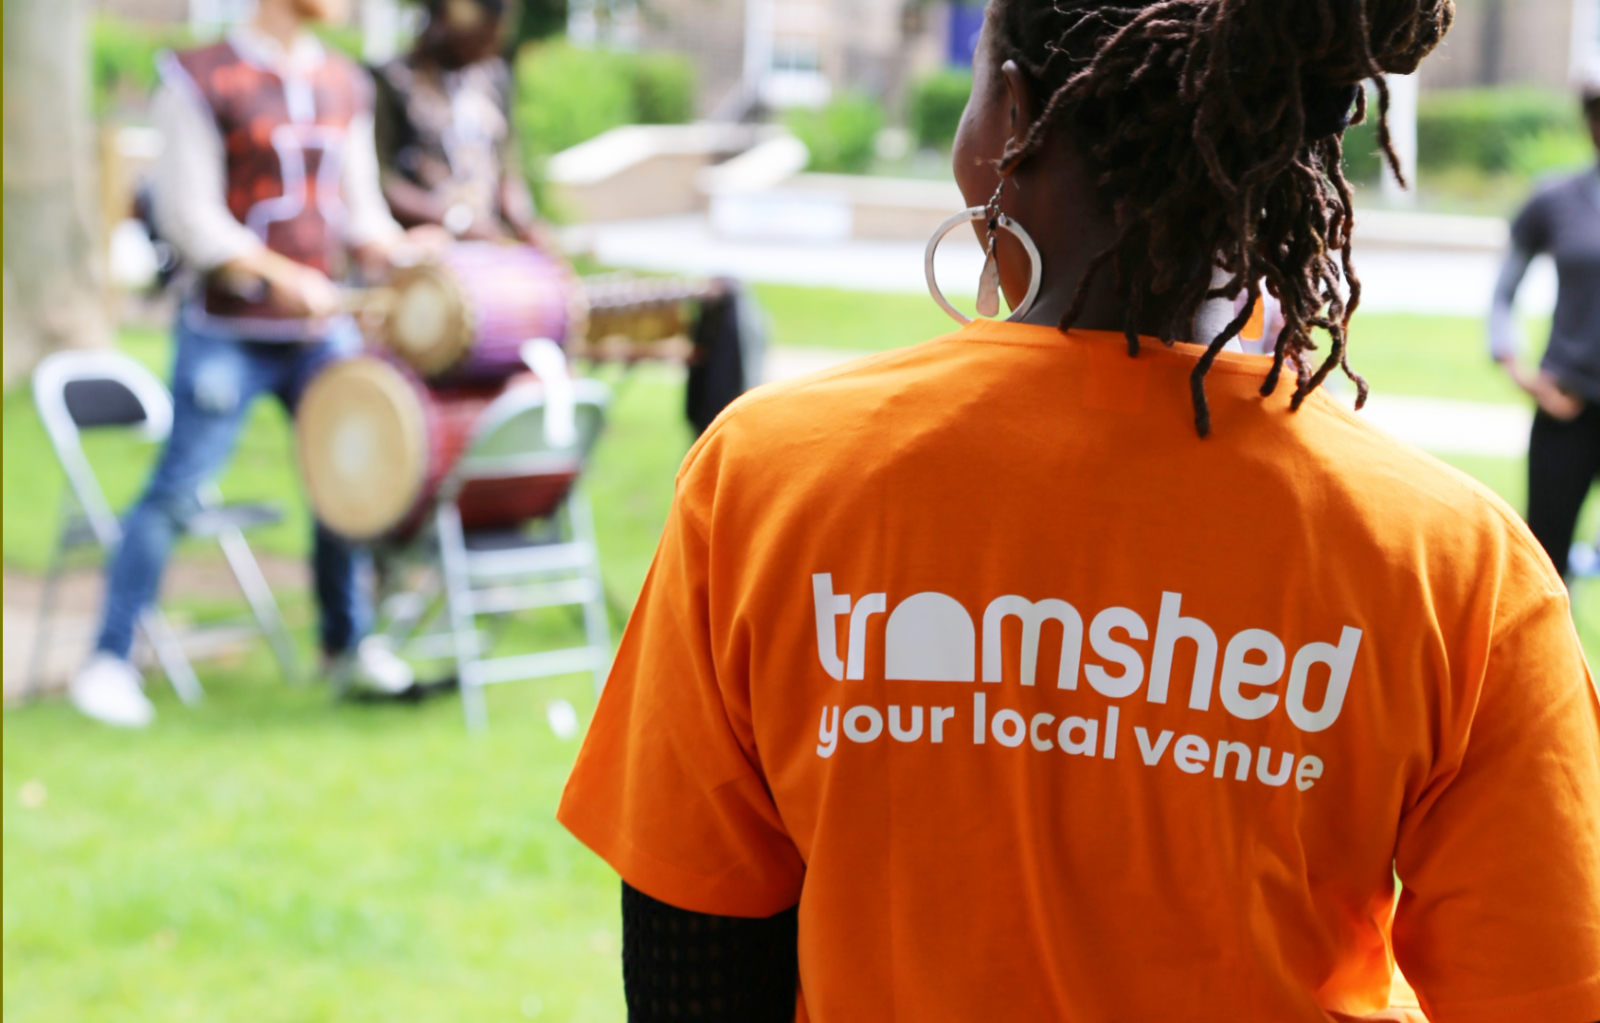 Share your thoughts: What does Tramshed Mean to you?